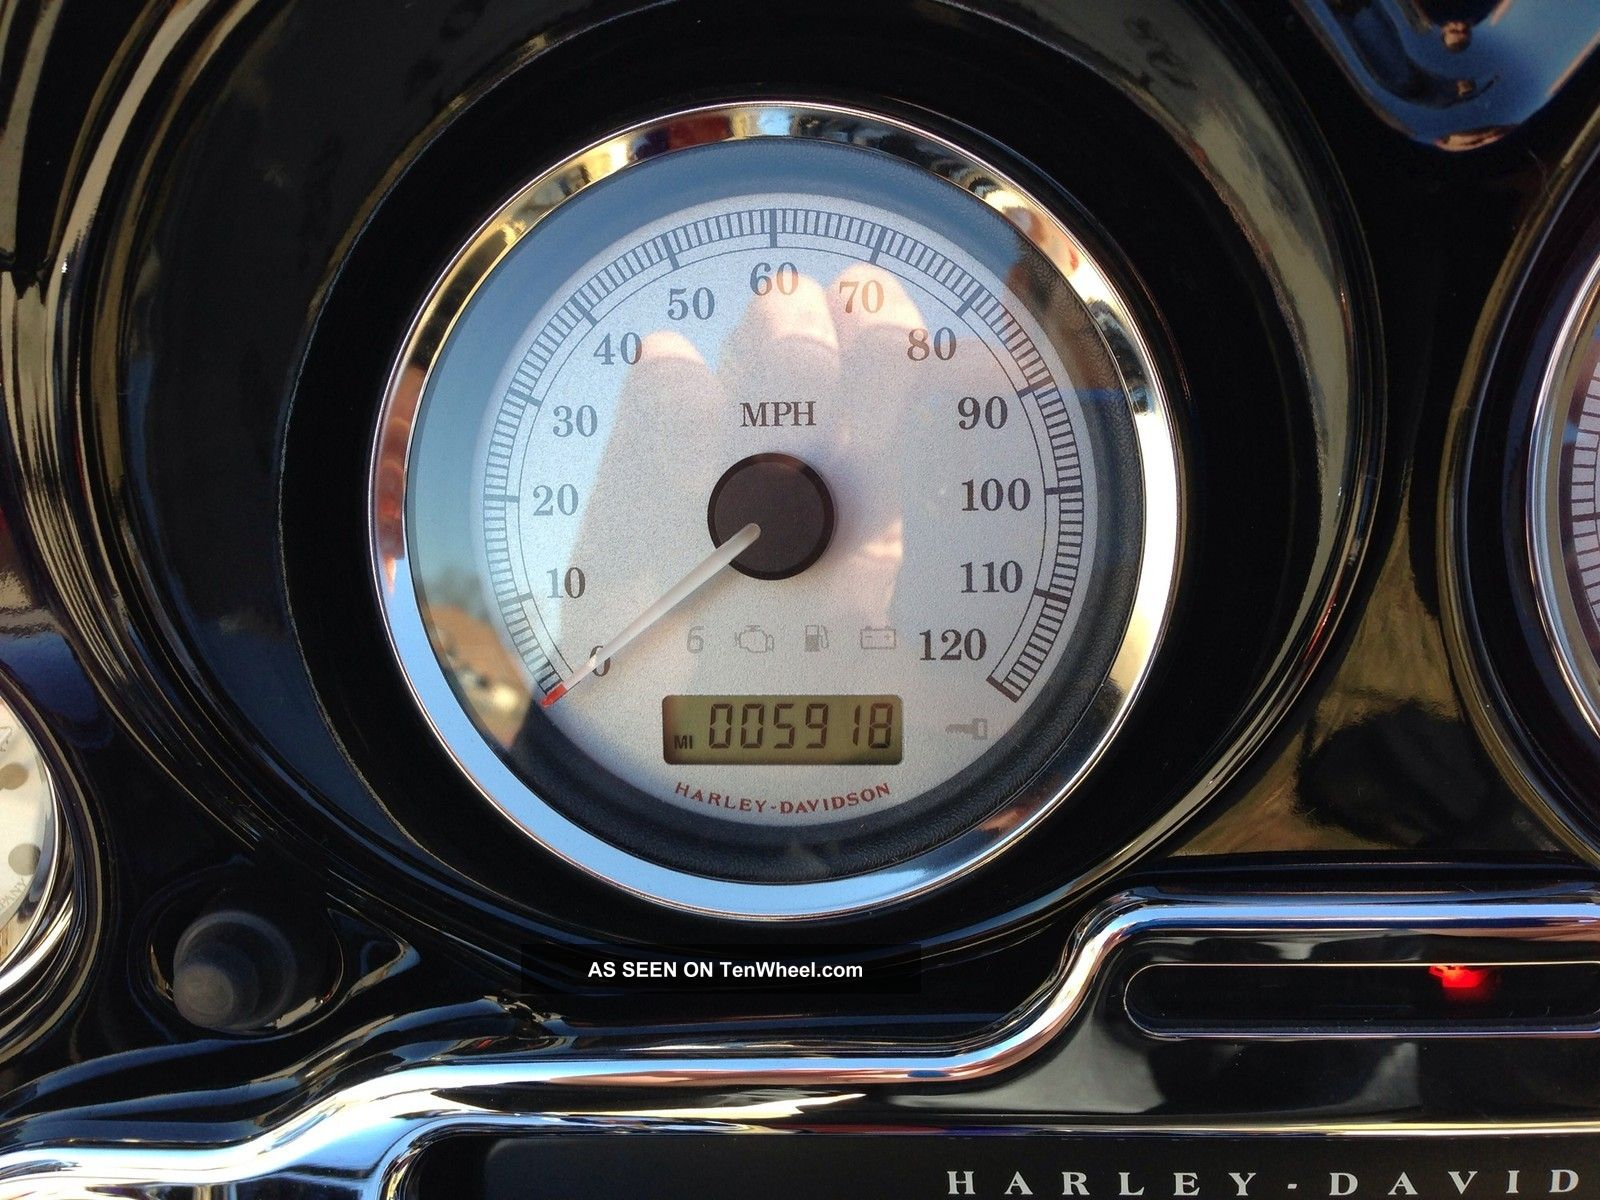 2011 Harley - Davidson Streetglide (close To Being A Screaming Eagle